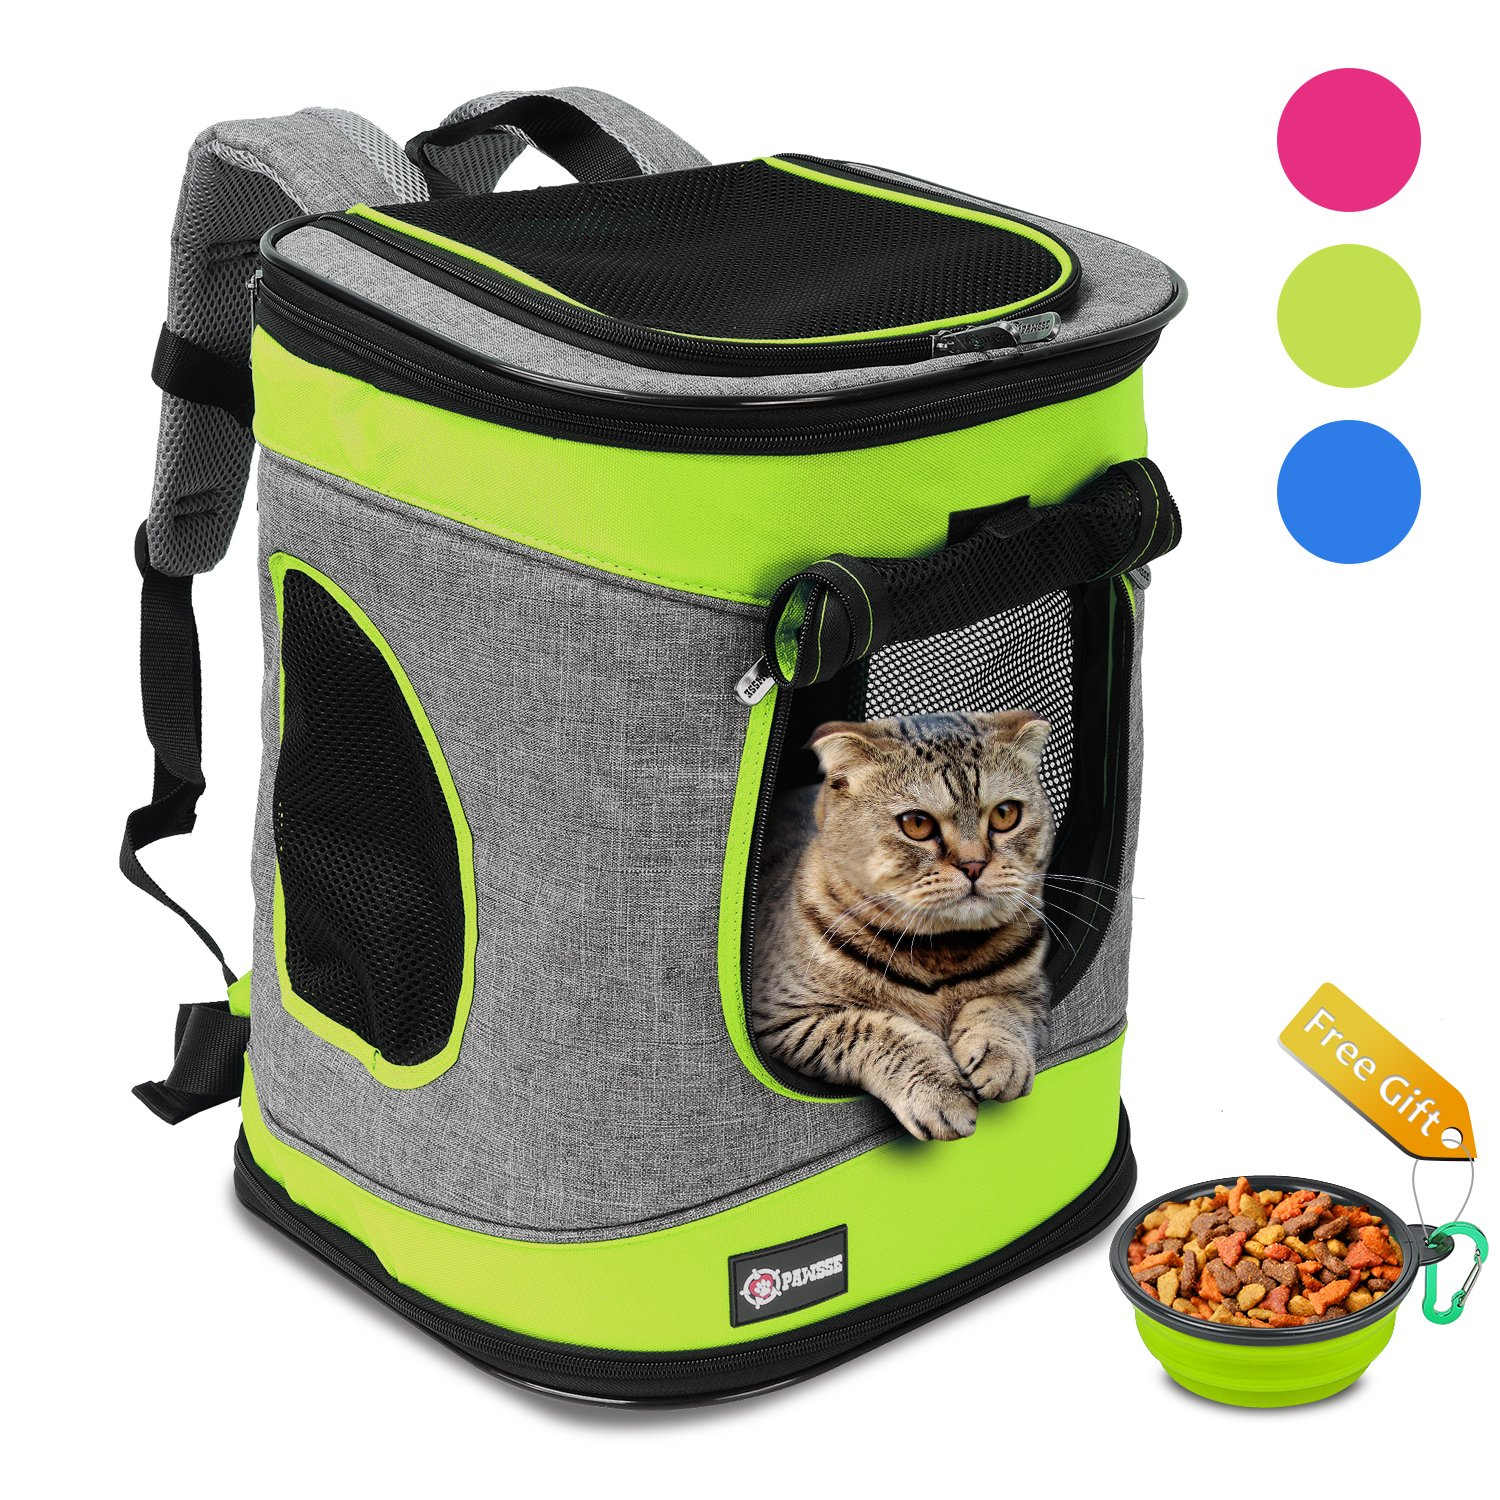 Pawsse Comfort Pet Carrier Backpack for Cats and Dogs up to 15 LBS Airline-Approved Travel Carrier for Pets Hiking, Walking, Cycling & Outdoor Use 16'' H x13.2 L x12 Green